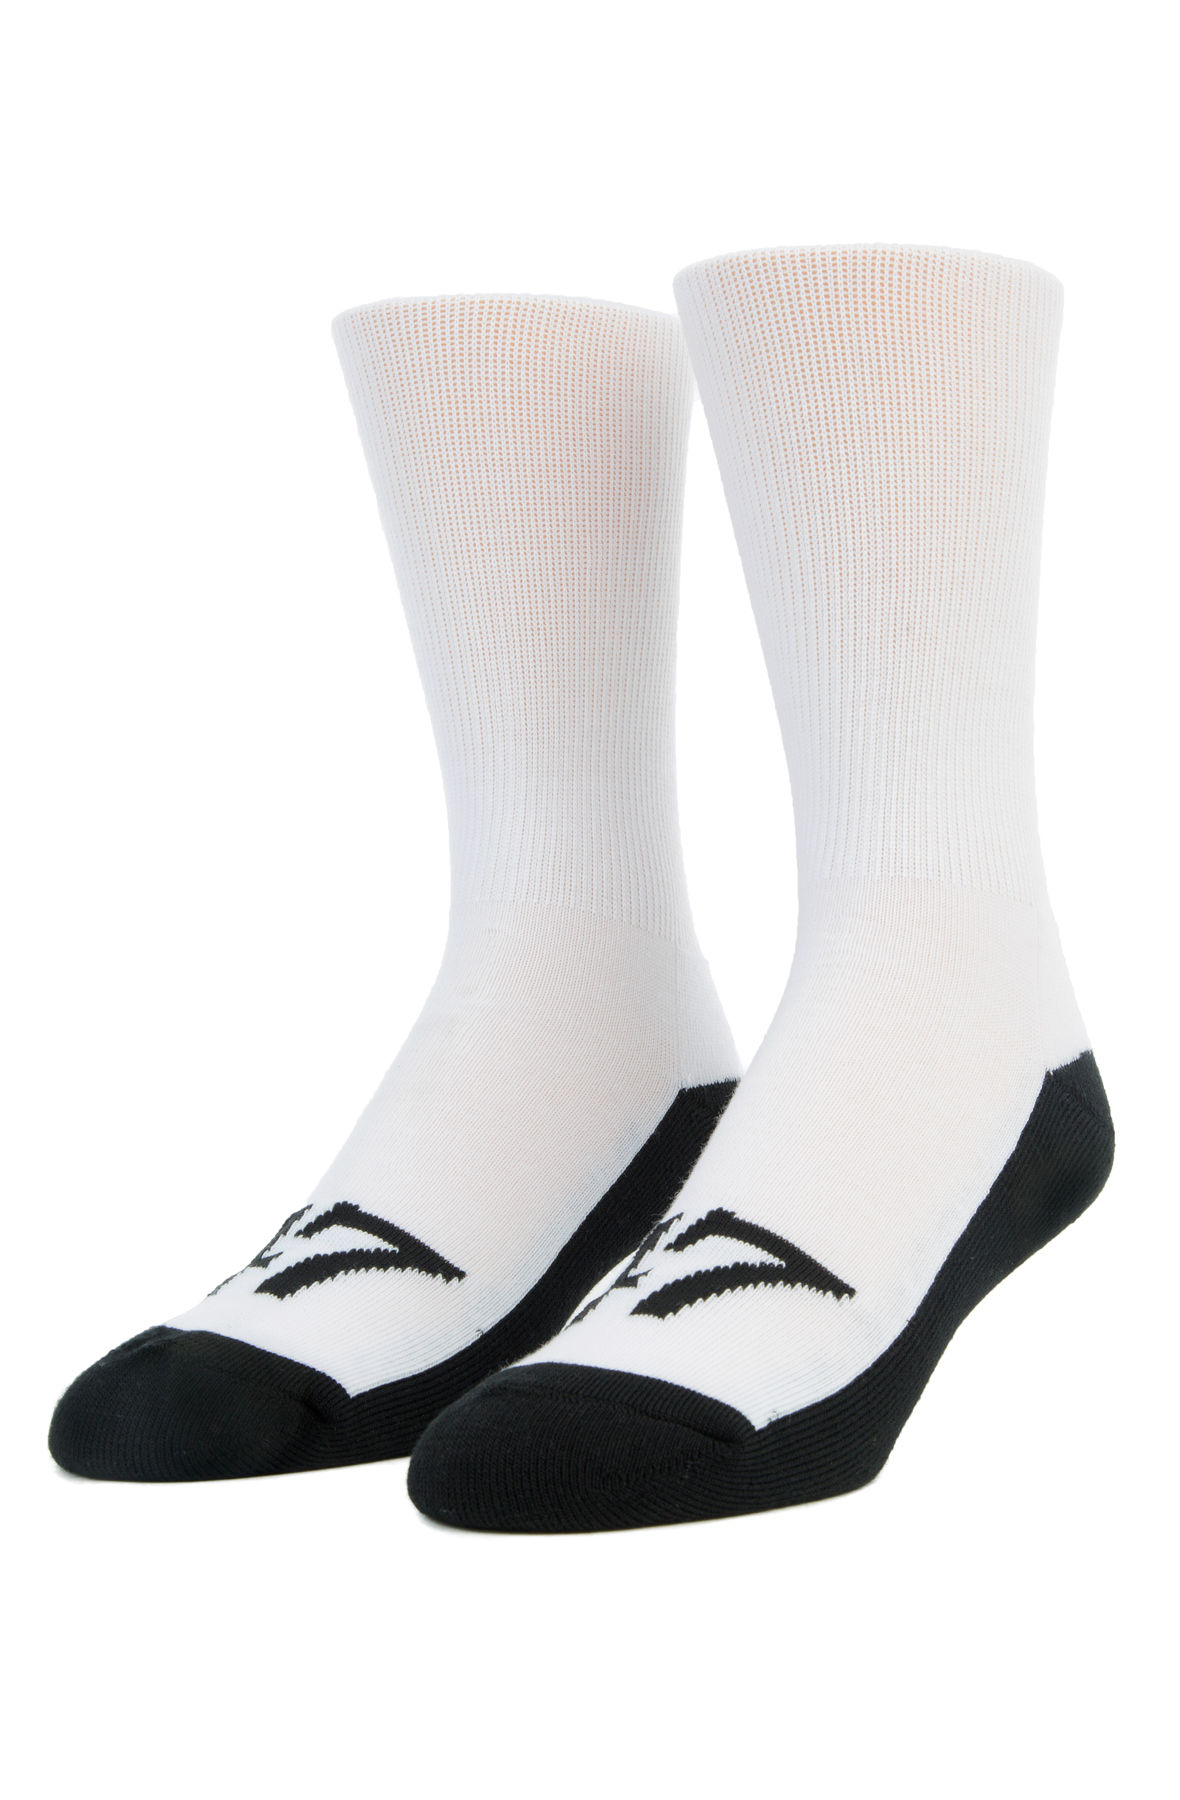 Image of The LRG Cuest Socks in White